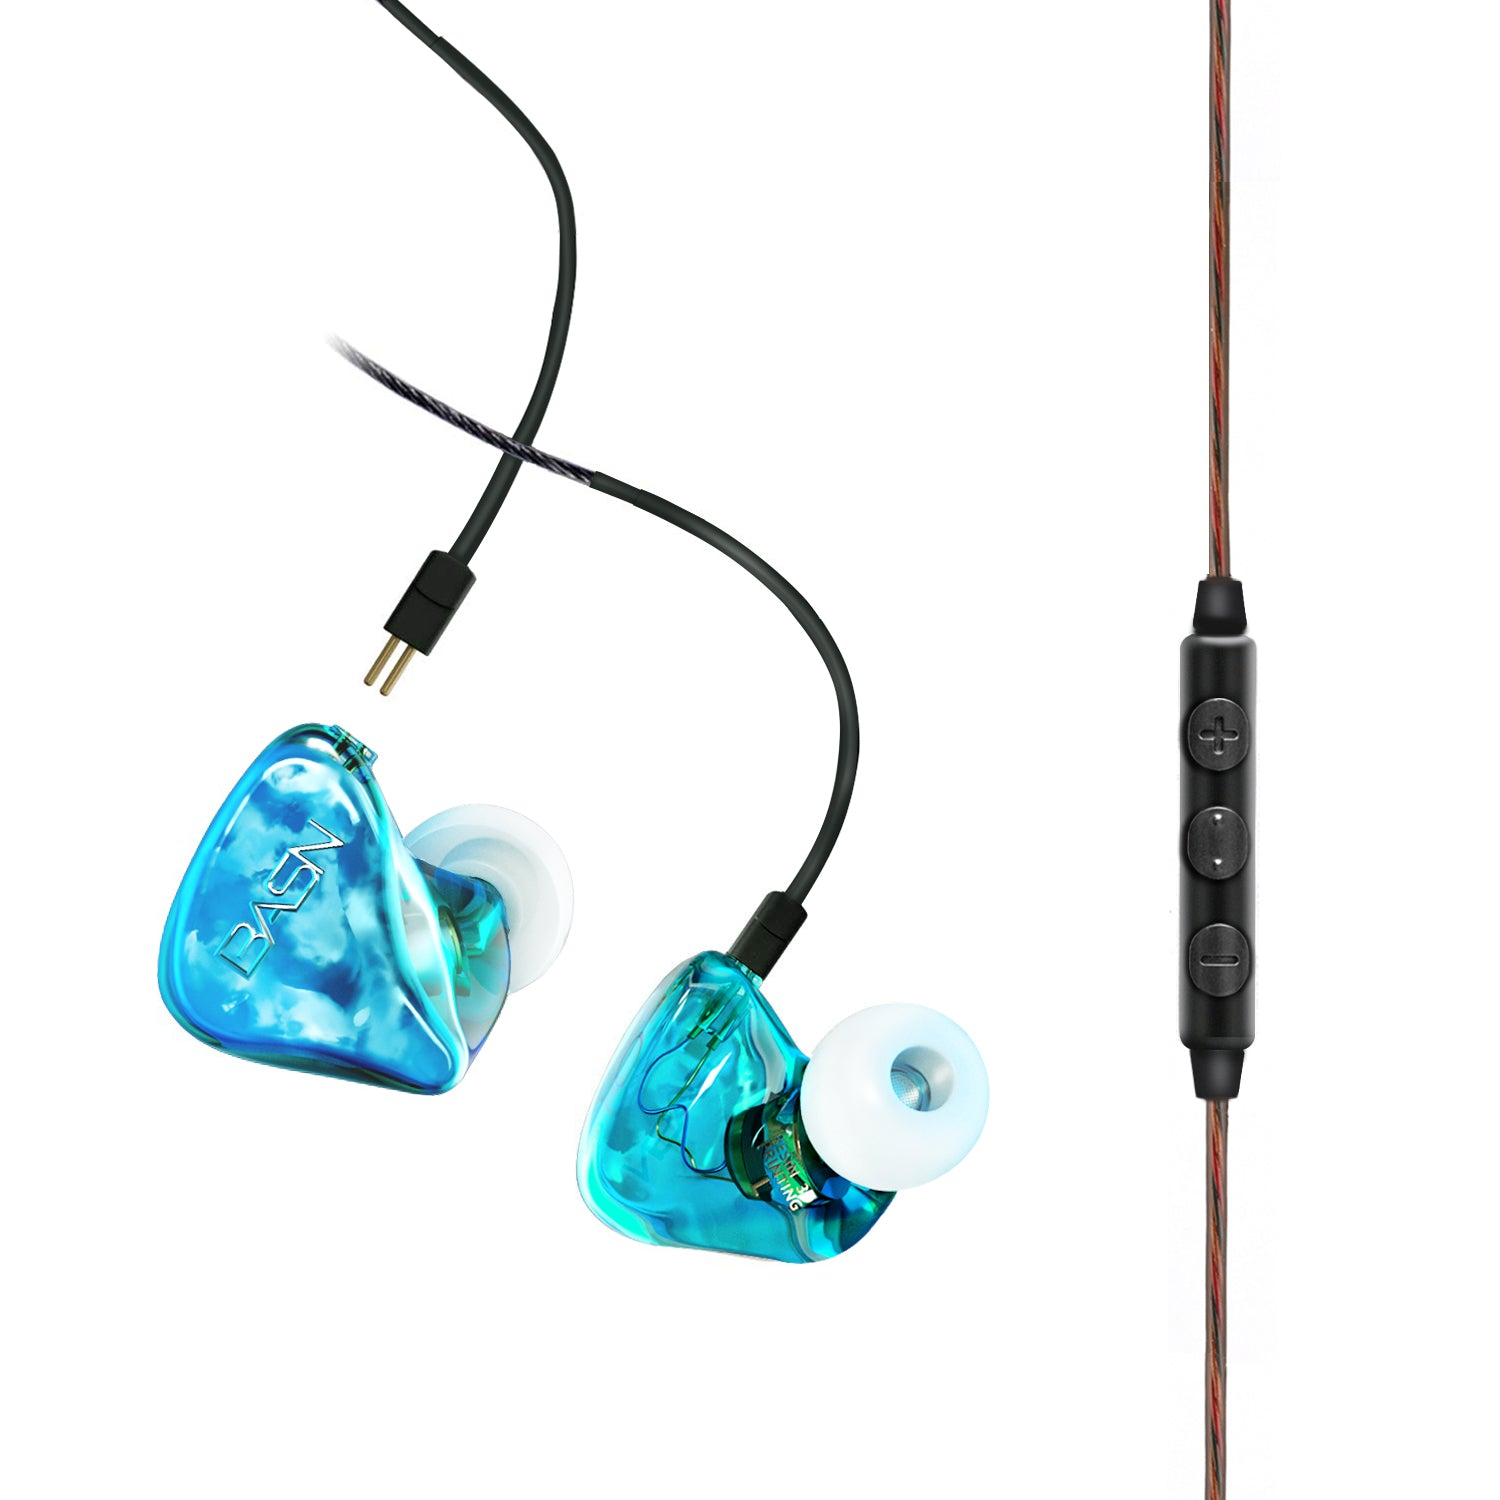 BASN Tempos V In Ear Monitor Headphones Blue